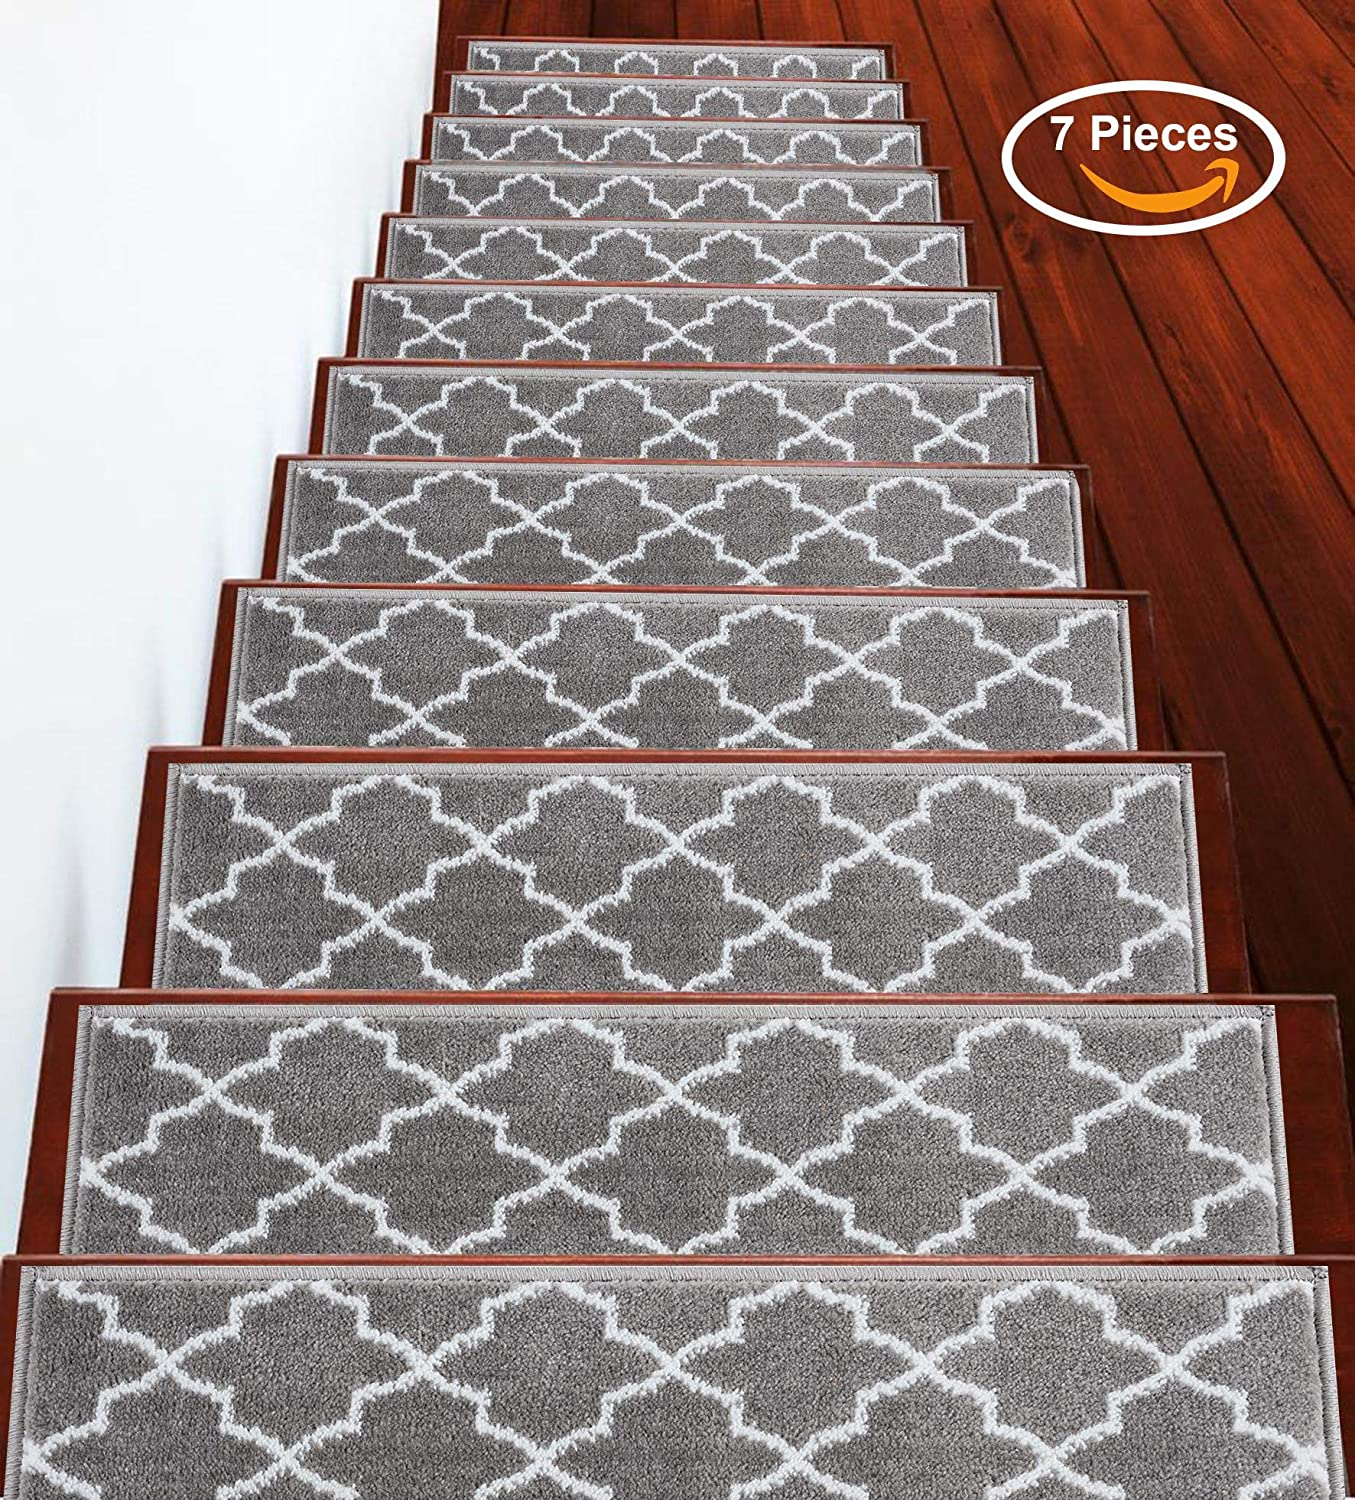 Pack of 13 Cozy Vibrant and Soft Stair Treads Gray /& White 100/% Polypropylene Stair Treads Trellisville Collection Contemporary 9 x 28